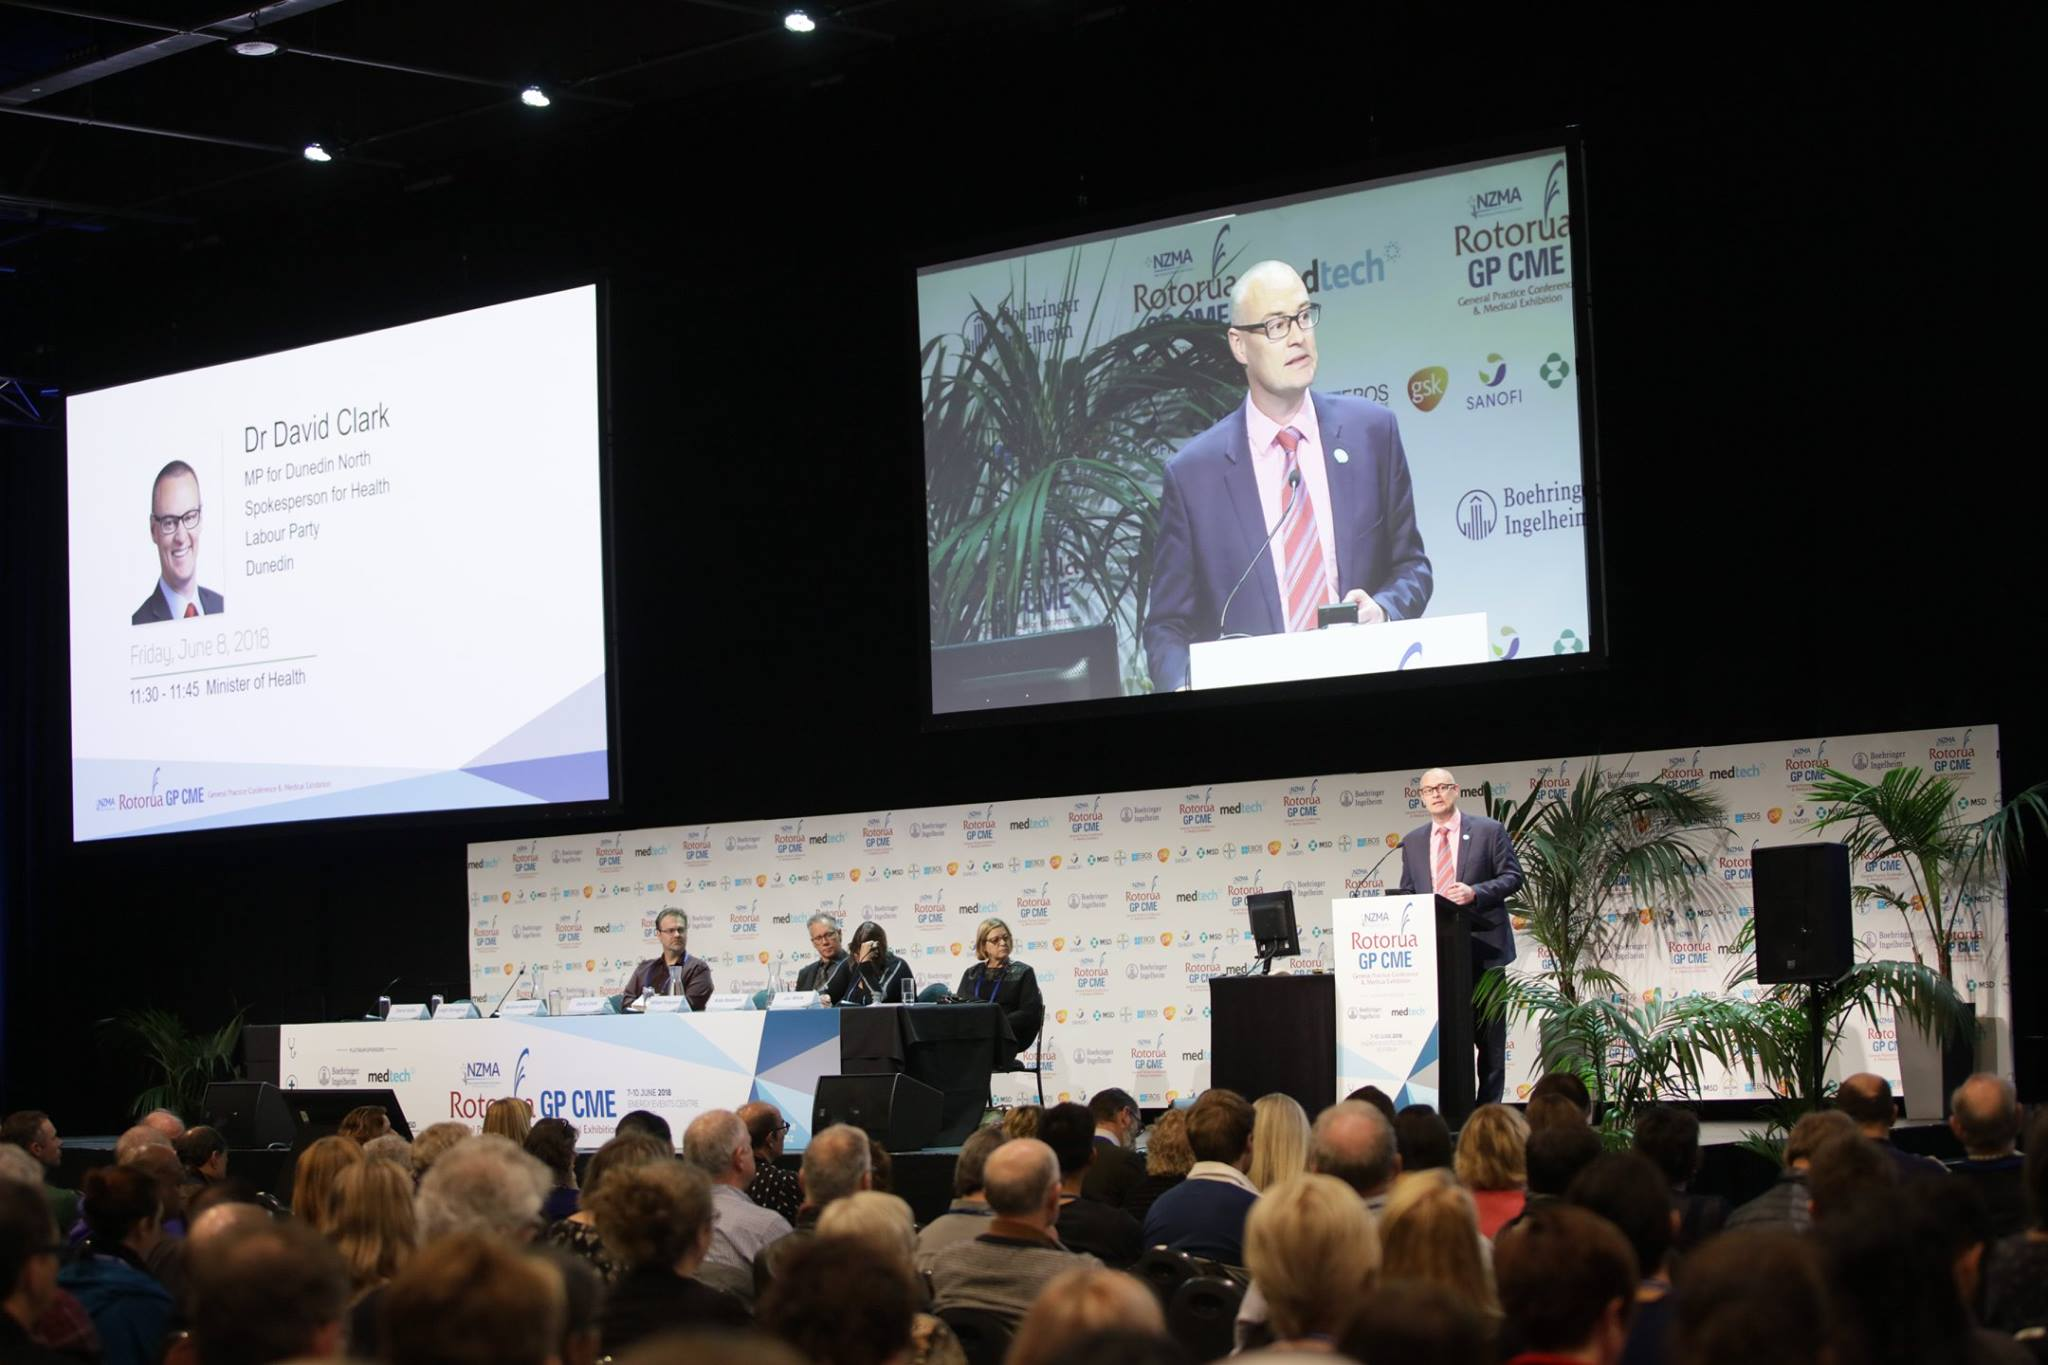 Hon Dr David Clark Speech - GP CME 2018